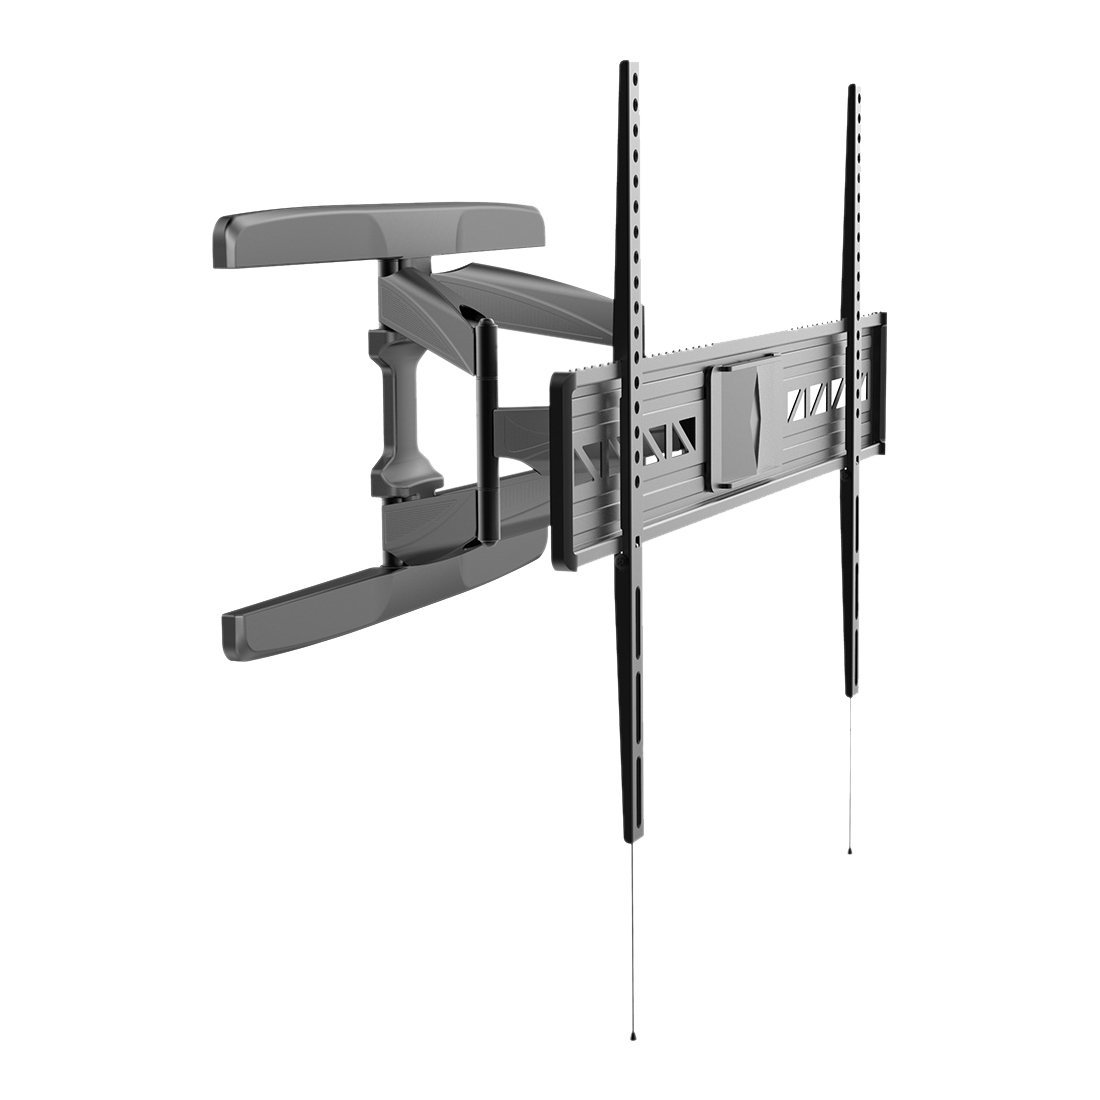 FLEXIMOUNTS A21 Full Motion Mega TV Wall Mount Bracket Articulating Fits Most 47-84' LCD LED TV by